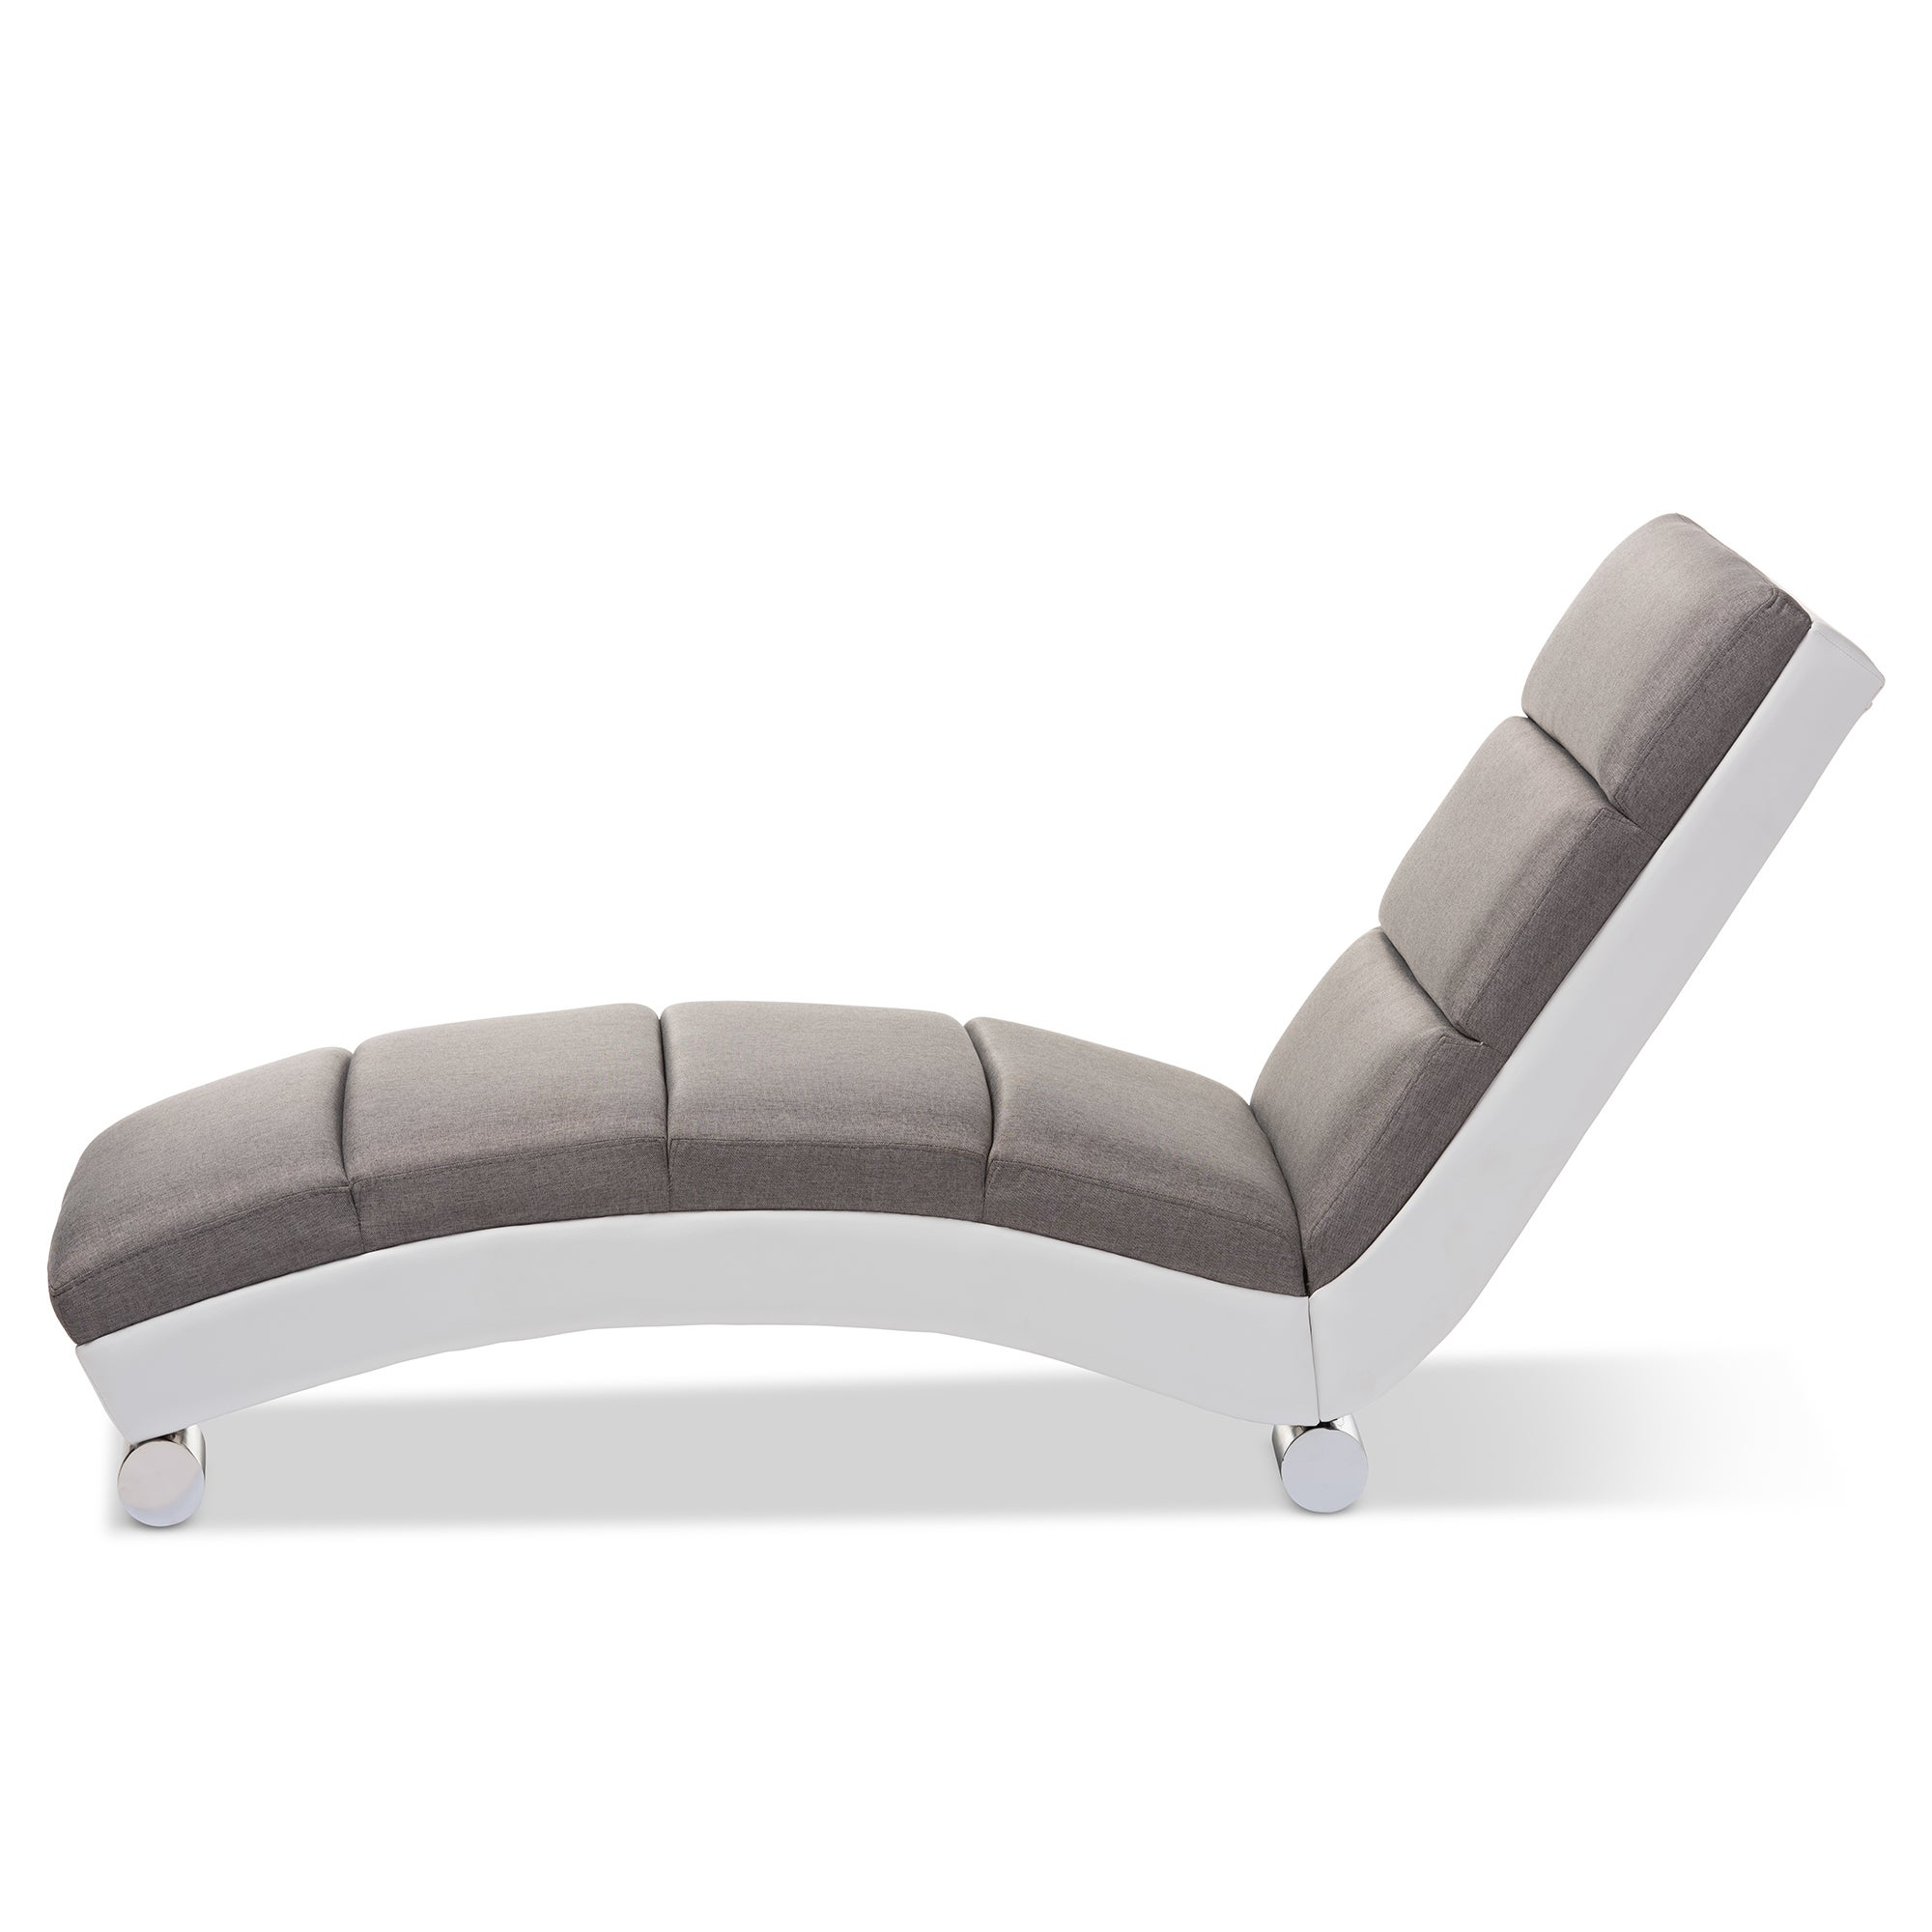 home overstock today leather lounge chaise knight christopher by garden finlay product free shipping